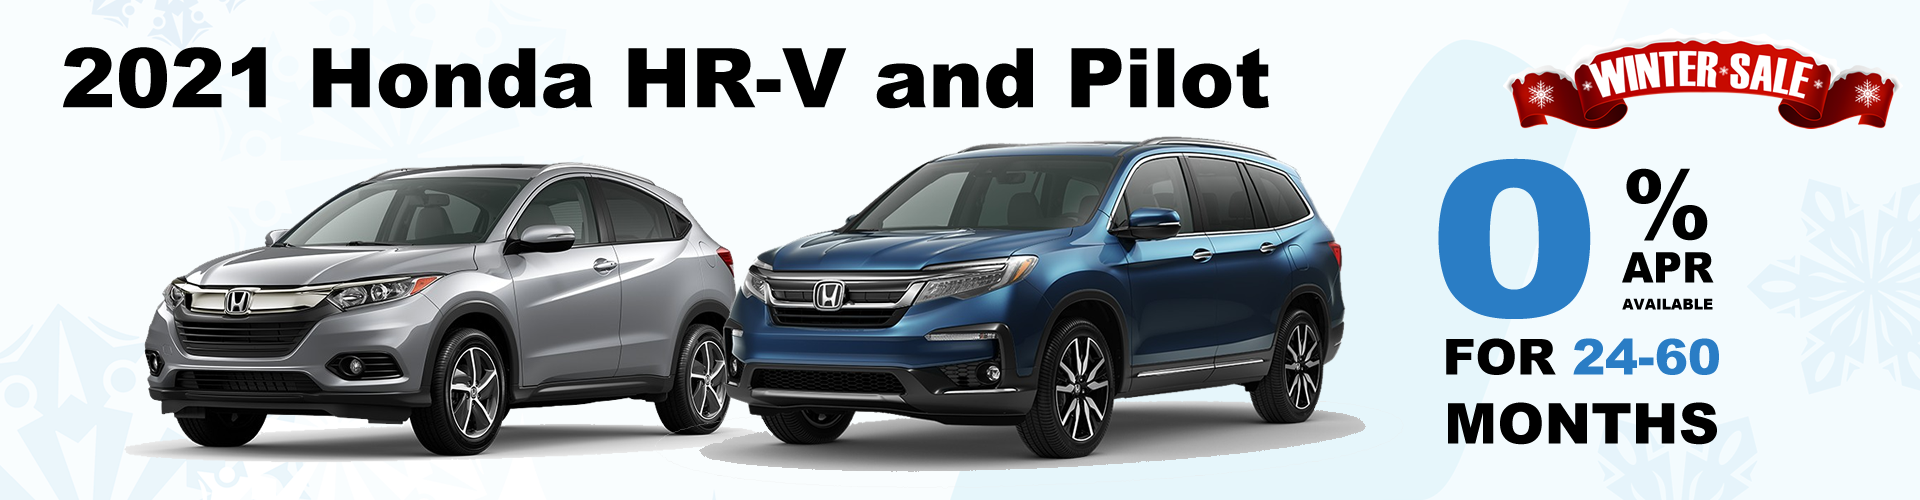 HRV-Pilot-LowAPR-Home-January-2021-V1